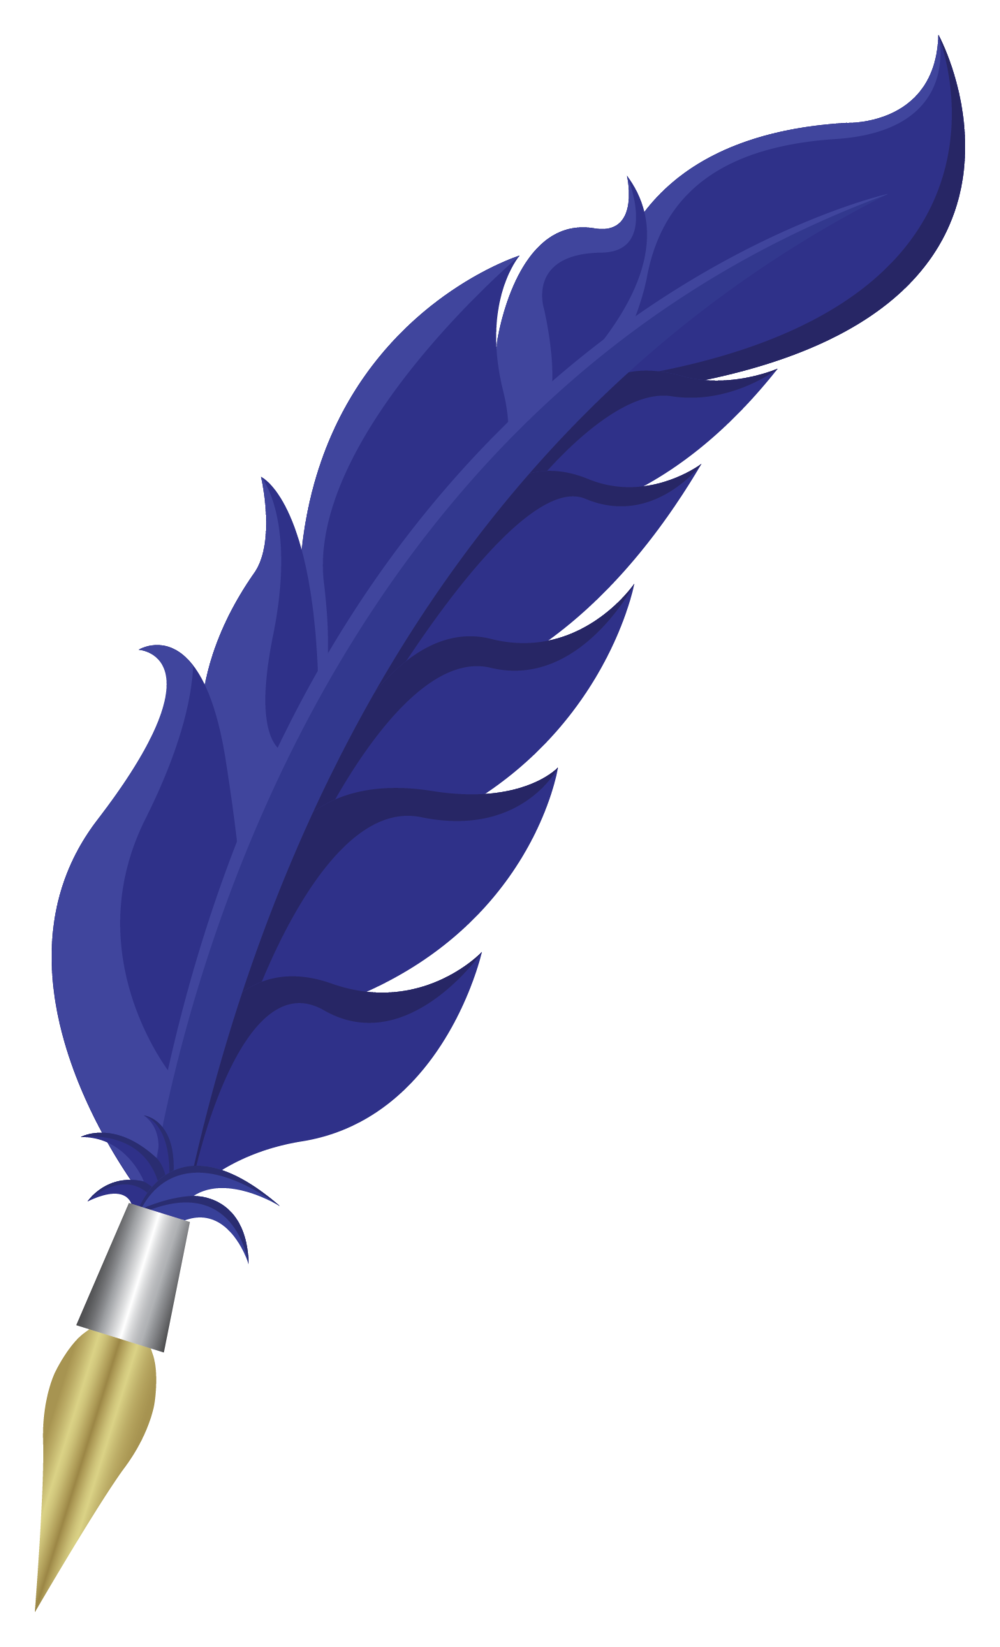 Poetry clipart plume pen. Dear hubby